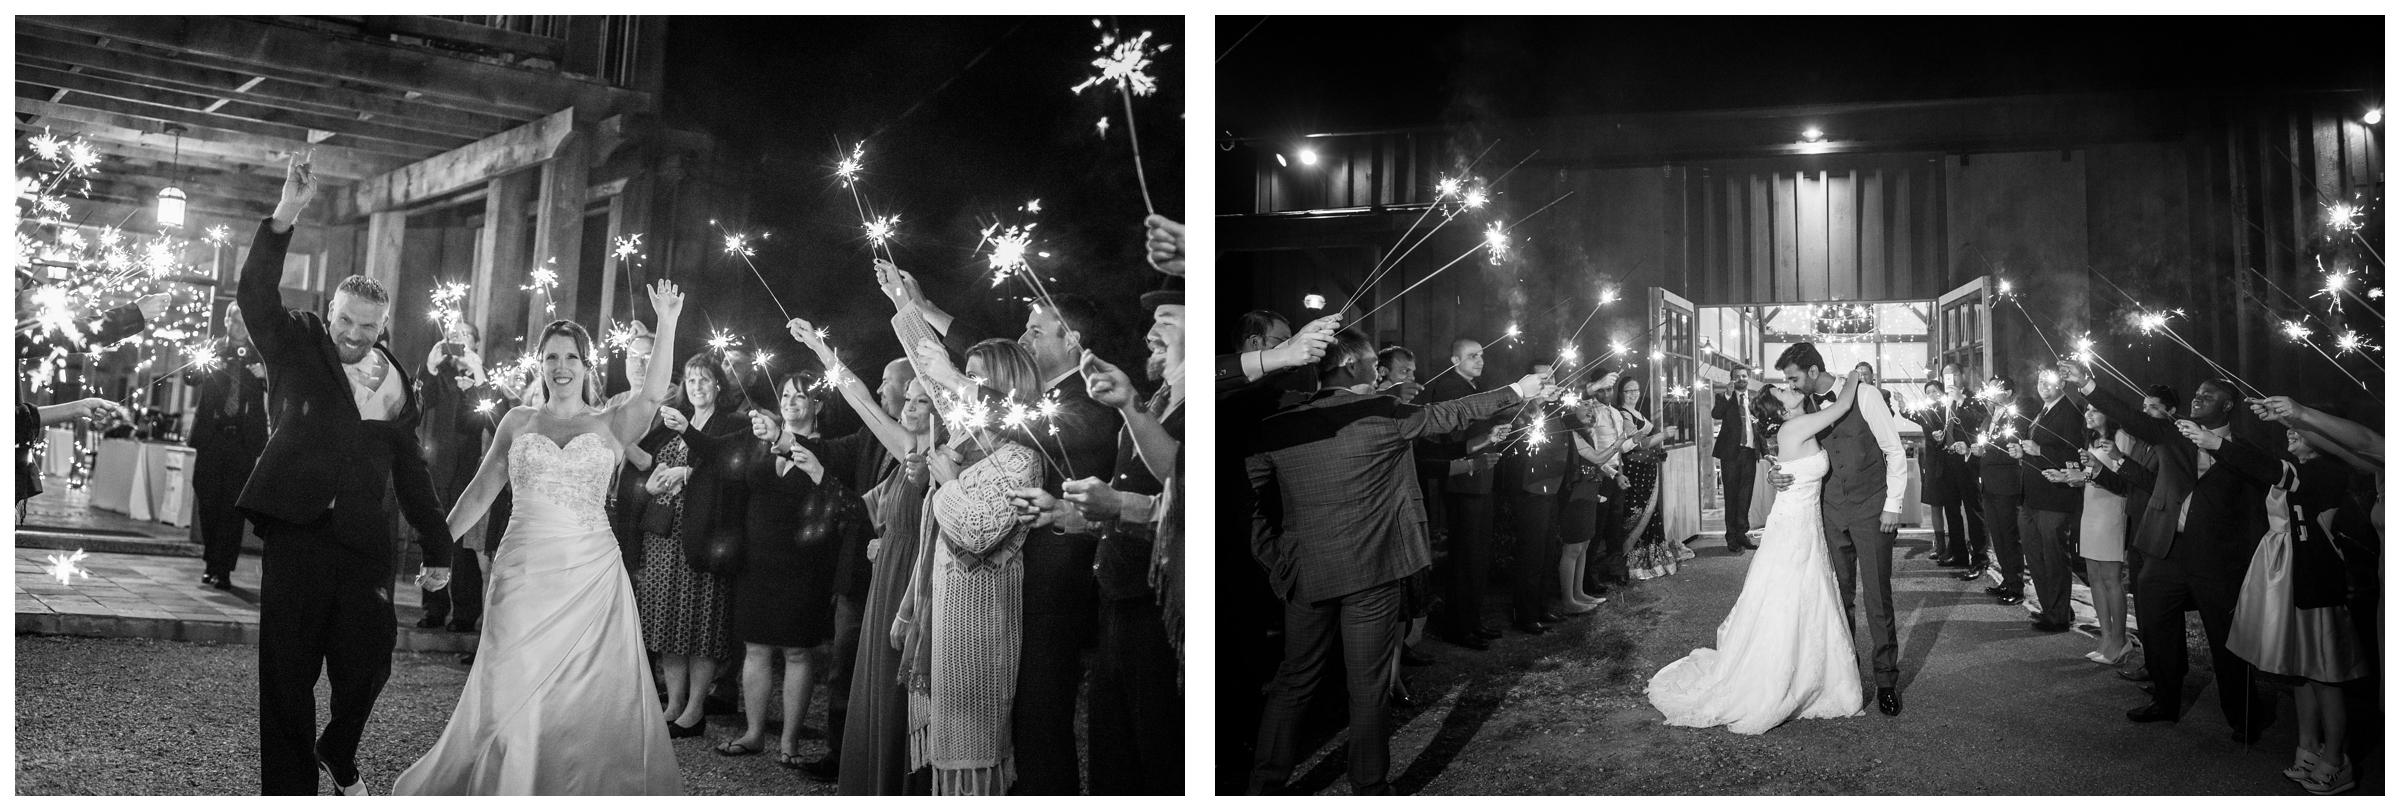 wedding guests cheering during bride and groom's sparkler exit